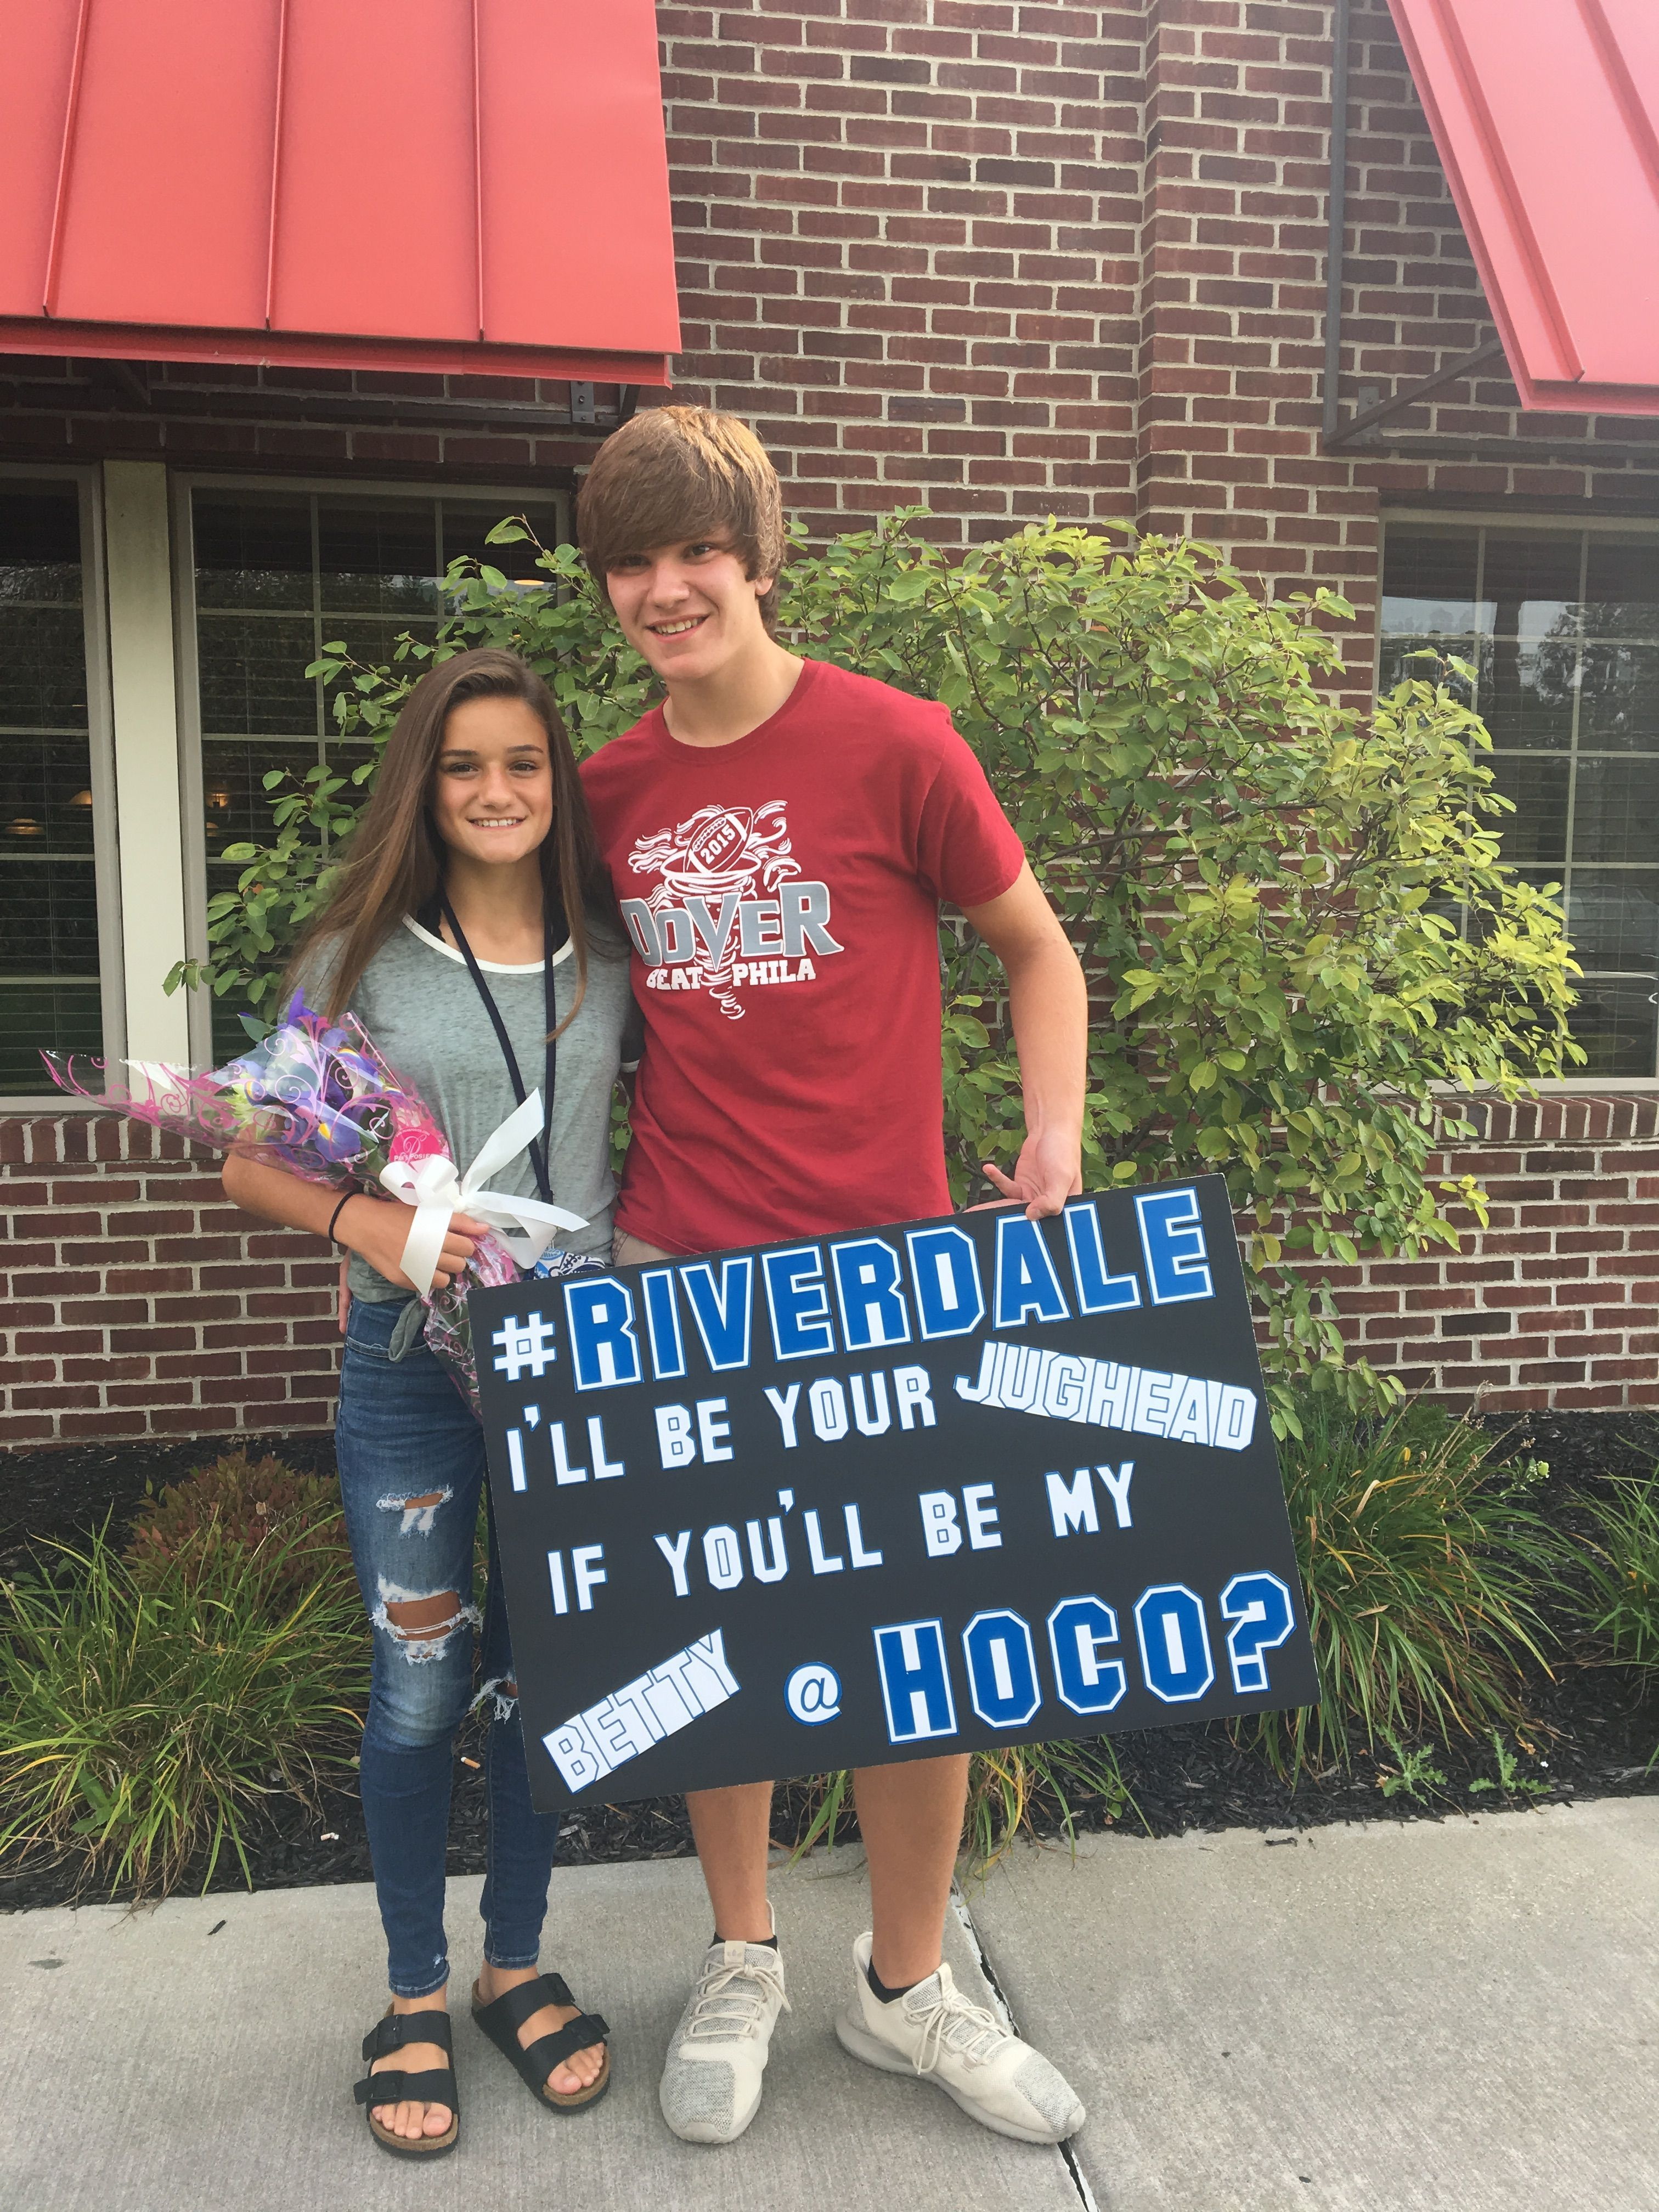 Riverdale Homecoming Proposal #homecomingproposalideas Riverdale Homecoming Proposal #hocoproposals